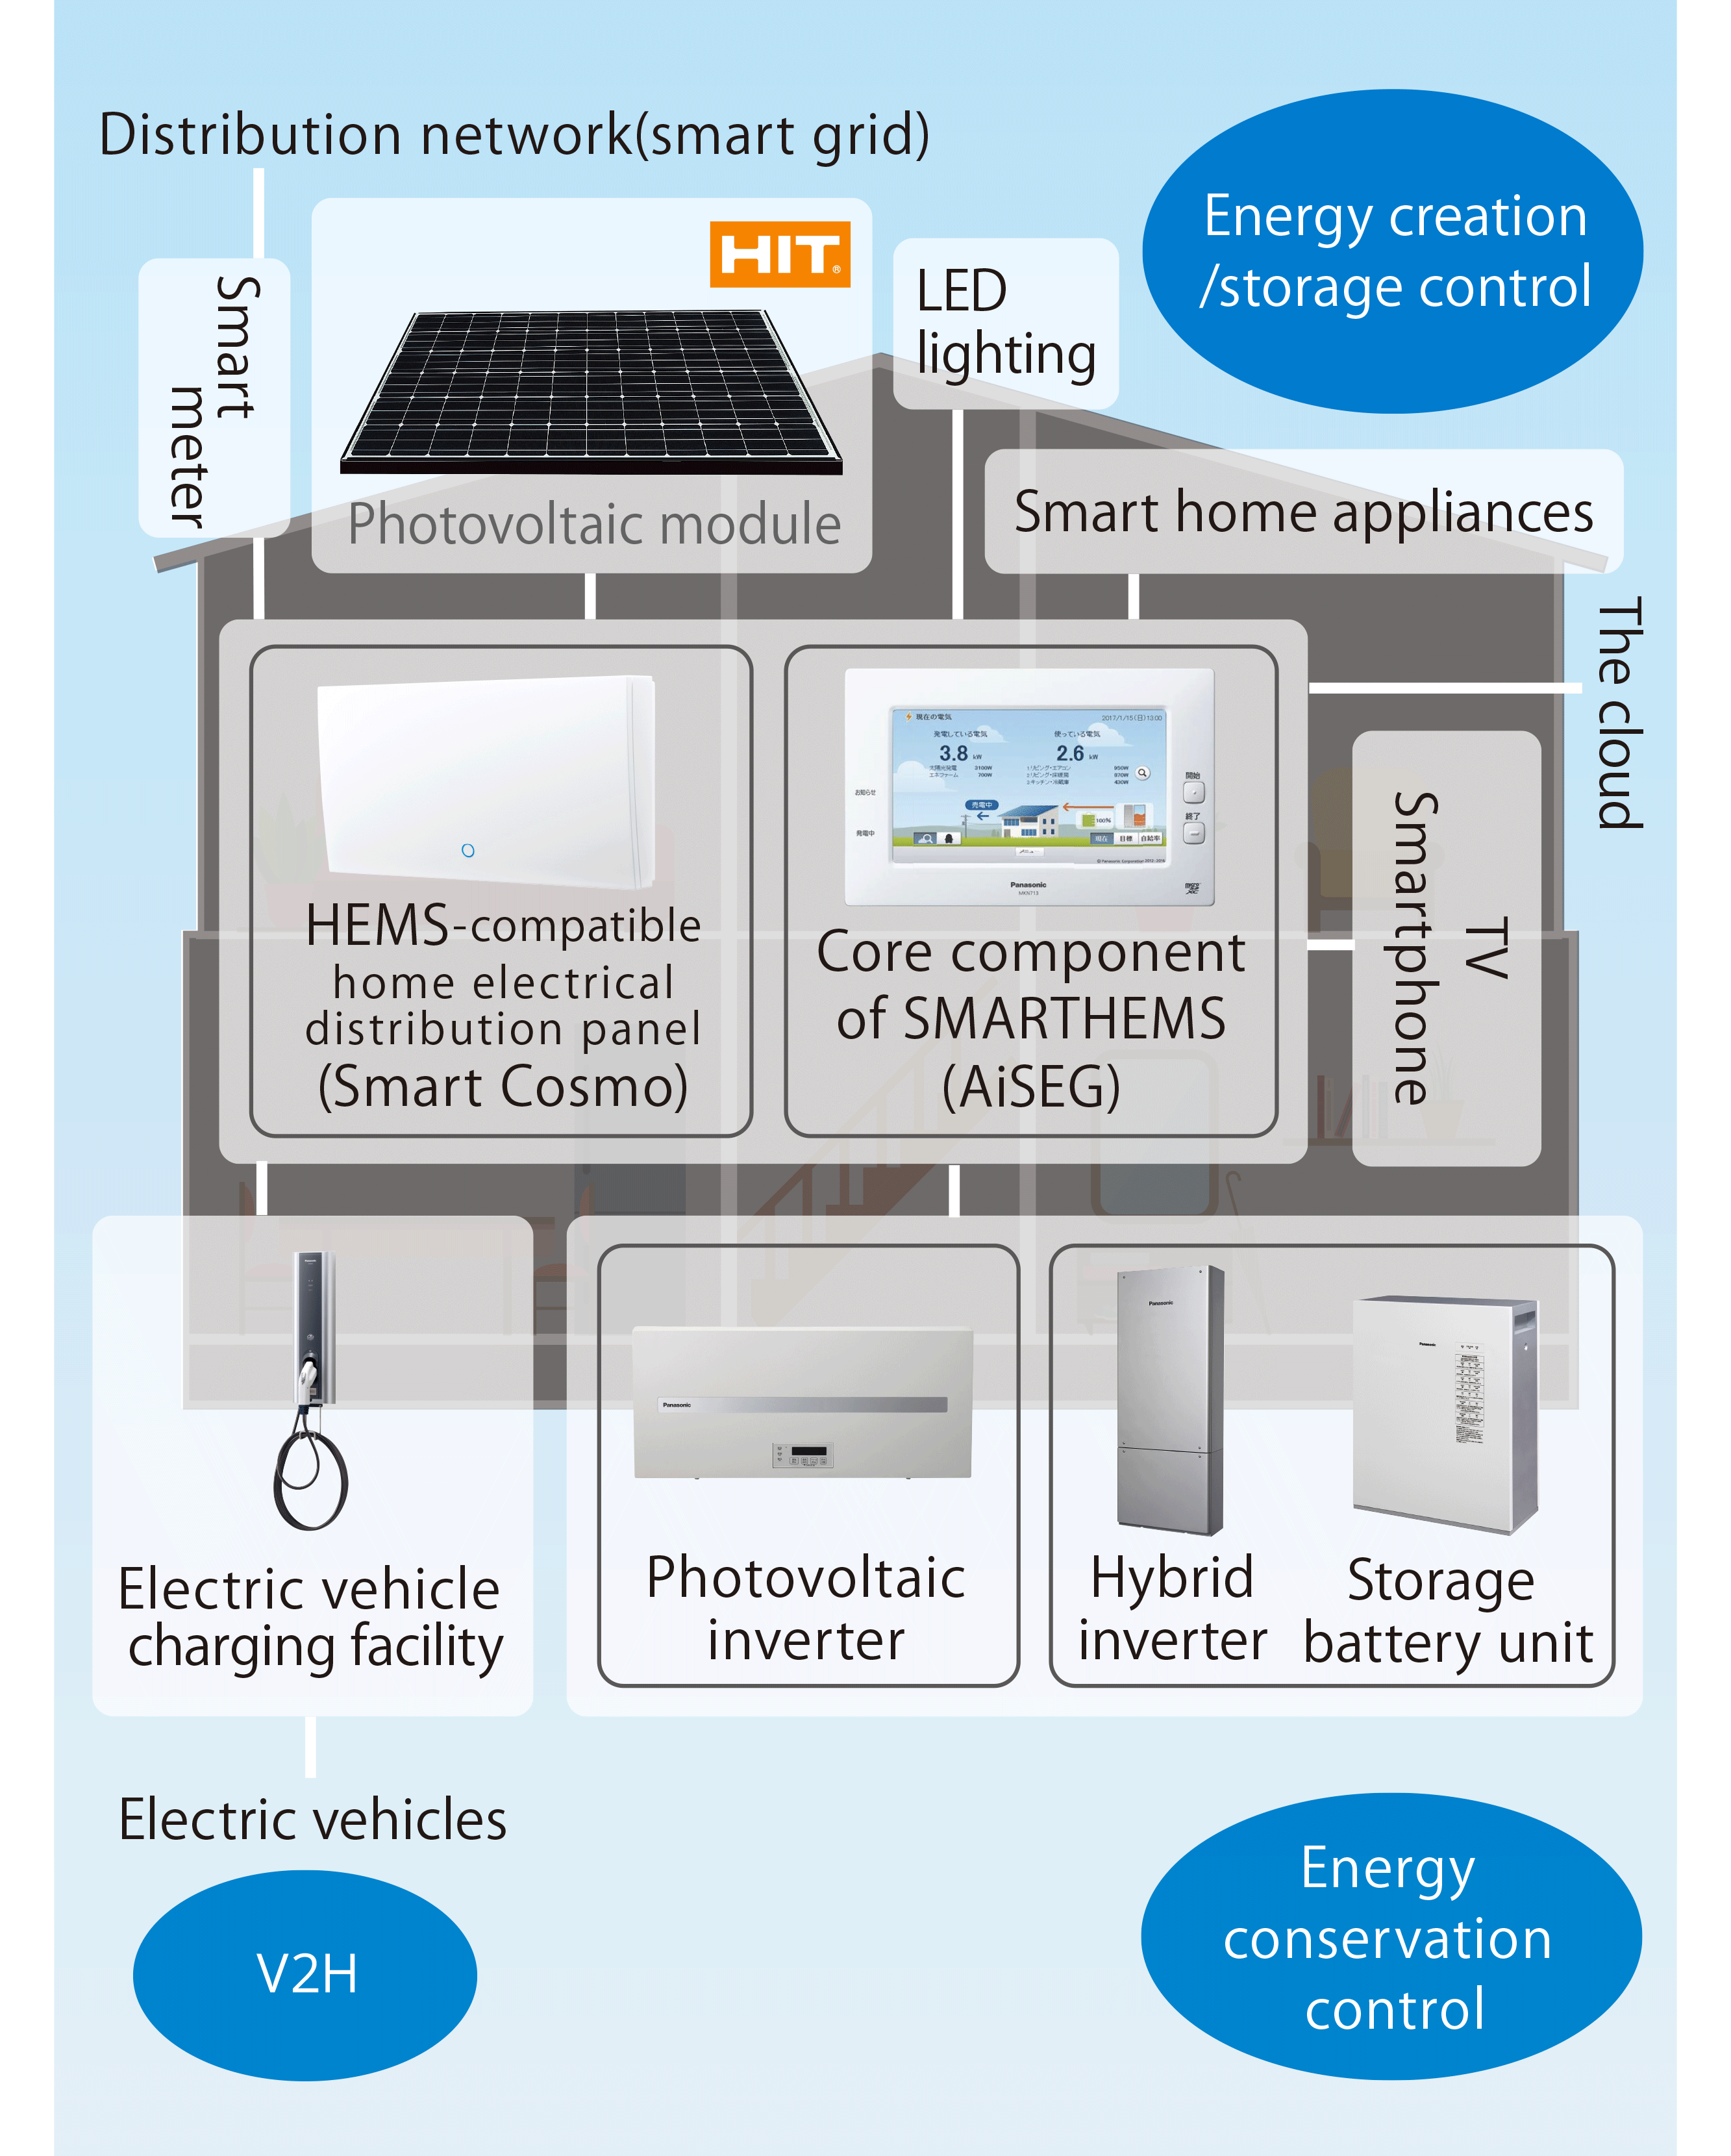 Figure: The electric power that is generated by HIT photovoltaic modules, etc., and enters the home through Smart Grids is controlled by Smart Cosmo, a HEMS compatible home electrical distribution panel, and AiSEG, which forms the core of the SMARTHEMS system. Energy is created, stored, and used by means of power conditioners, power stations, and storage battery units. Energy-saving control is provided for LED lighting, home appliances and equipment. Another SMARTHEMS feature is its ability to exchange electric power with an electric vehicle using power transmission and reception equipment as a V2H (Vehicle to Home) system.